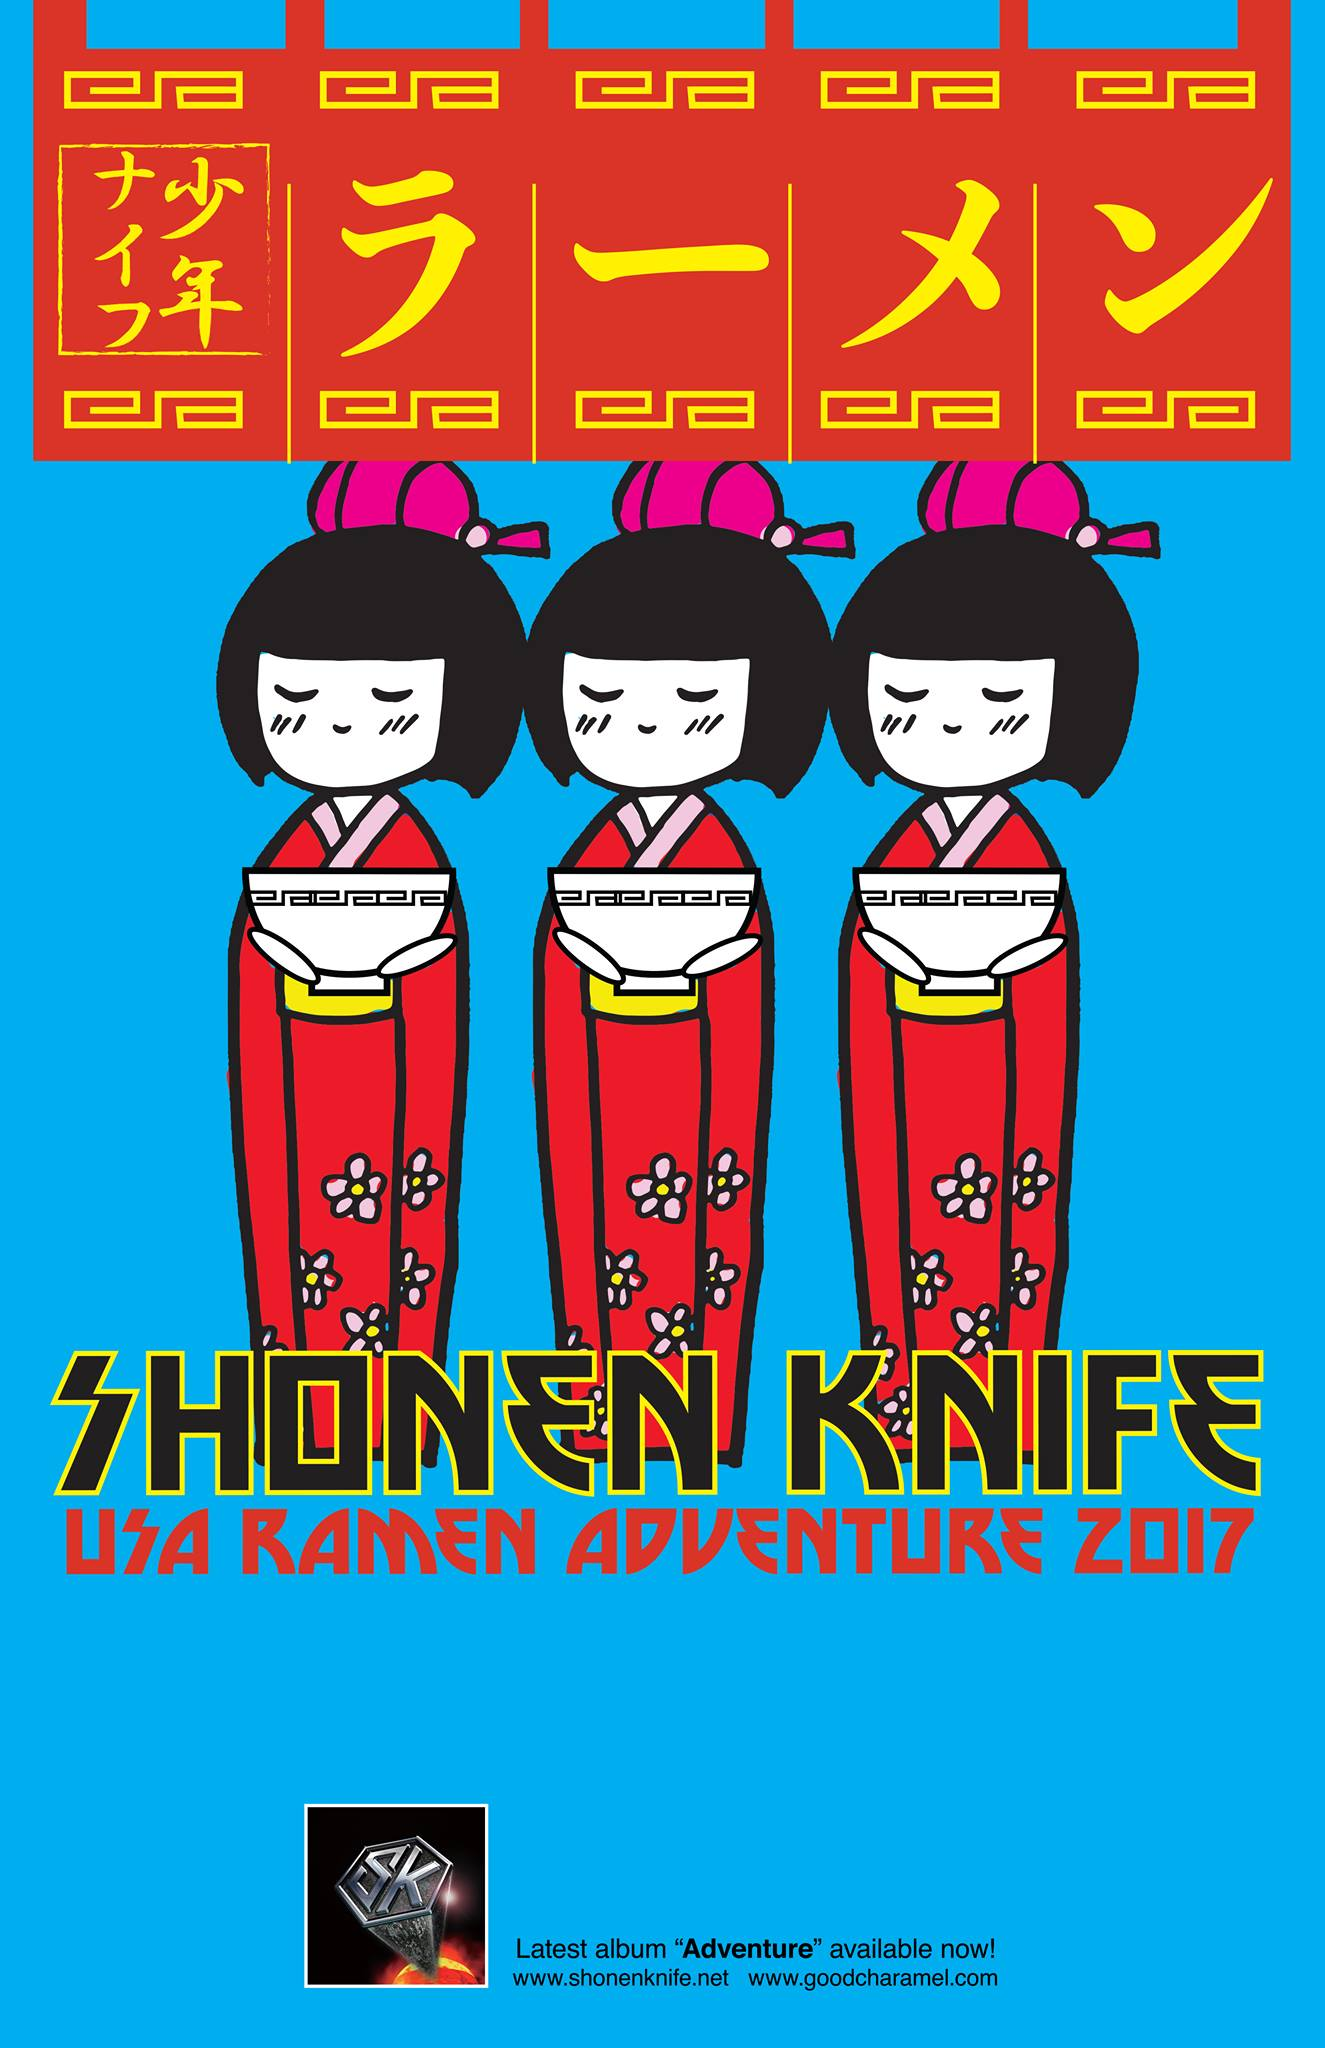 Shonen Knife, USA Ramen Adventure 2017, ramen, noodles, NYC, Japan, Brooklyn, Sunnyvale, punk rock, rock, concert, the Ramones